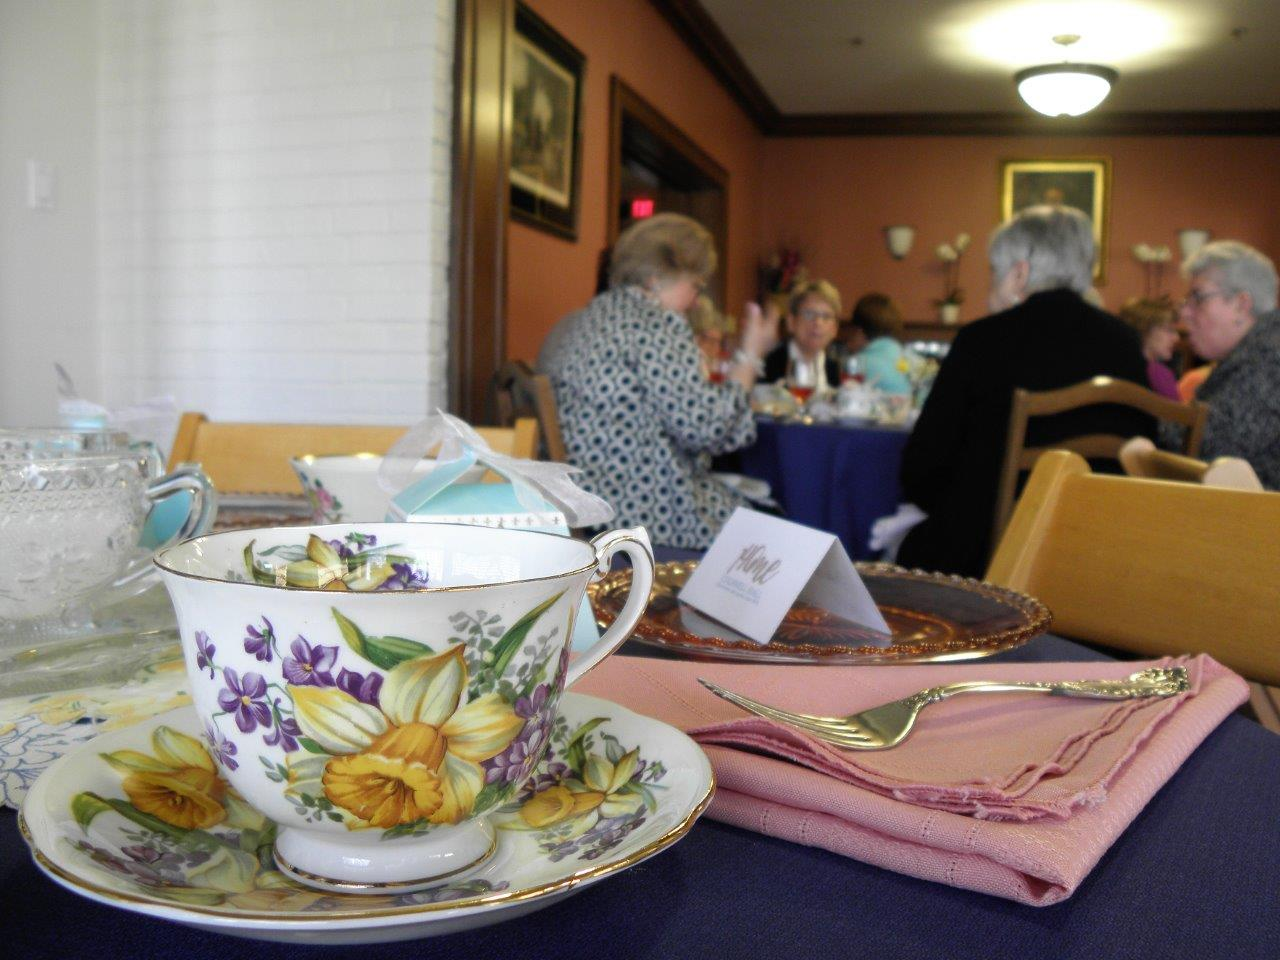 4/22/18 tea, teacup in foreground